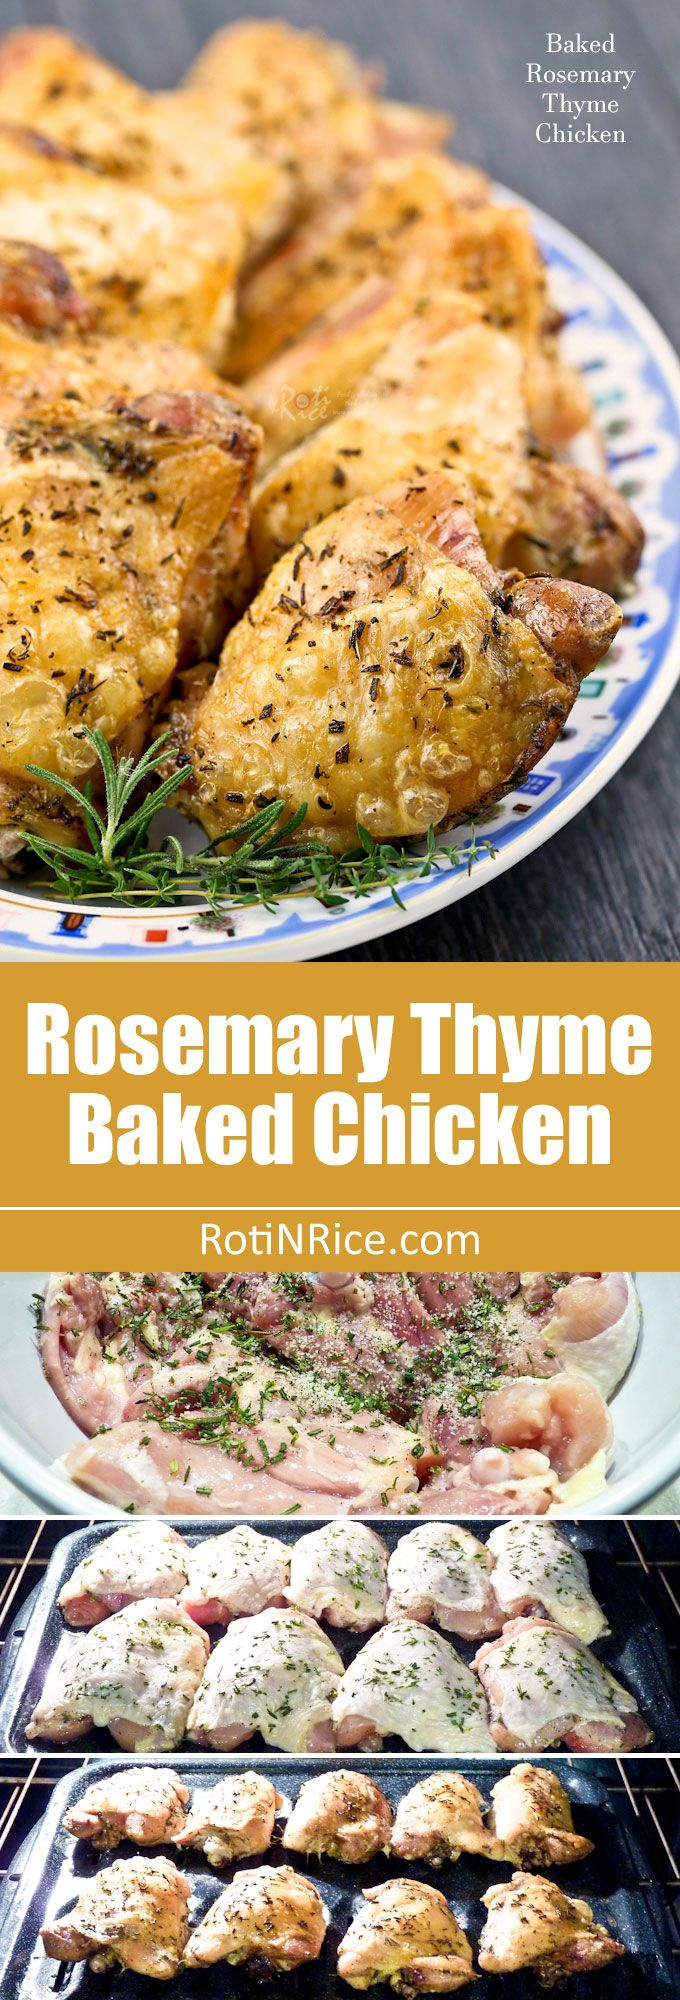 Rosemary Thyme Baked Chicken with a golden crispy skin. Only a few ingredients and minimum prep time. Great for any day of the week. | RotiNRice